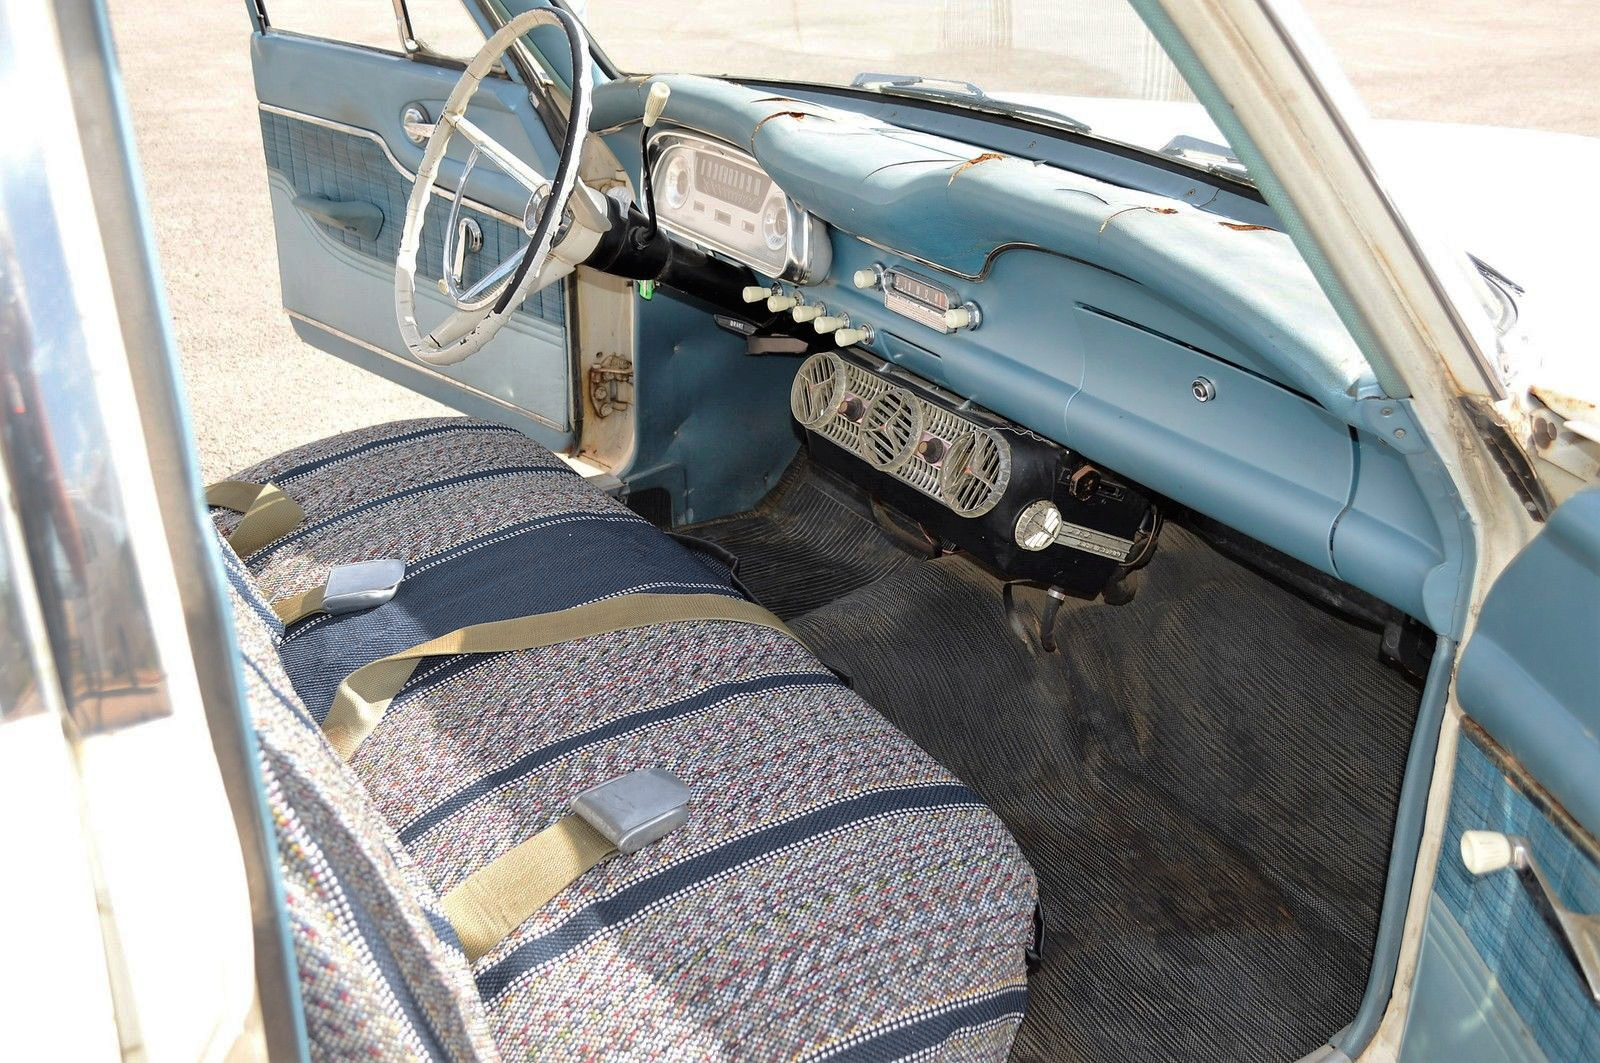 1964 ford falcon 4 door find used 1964 ford falcon 4 door 170 special - 062216 Barn Finds 1961 Ford Falcon 4